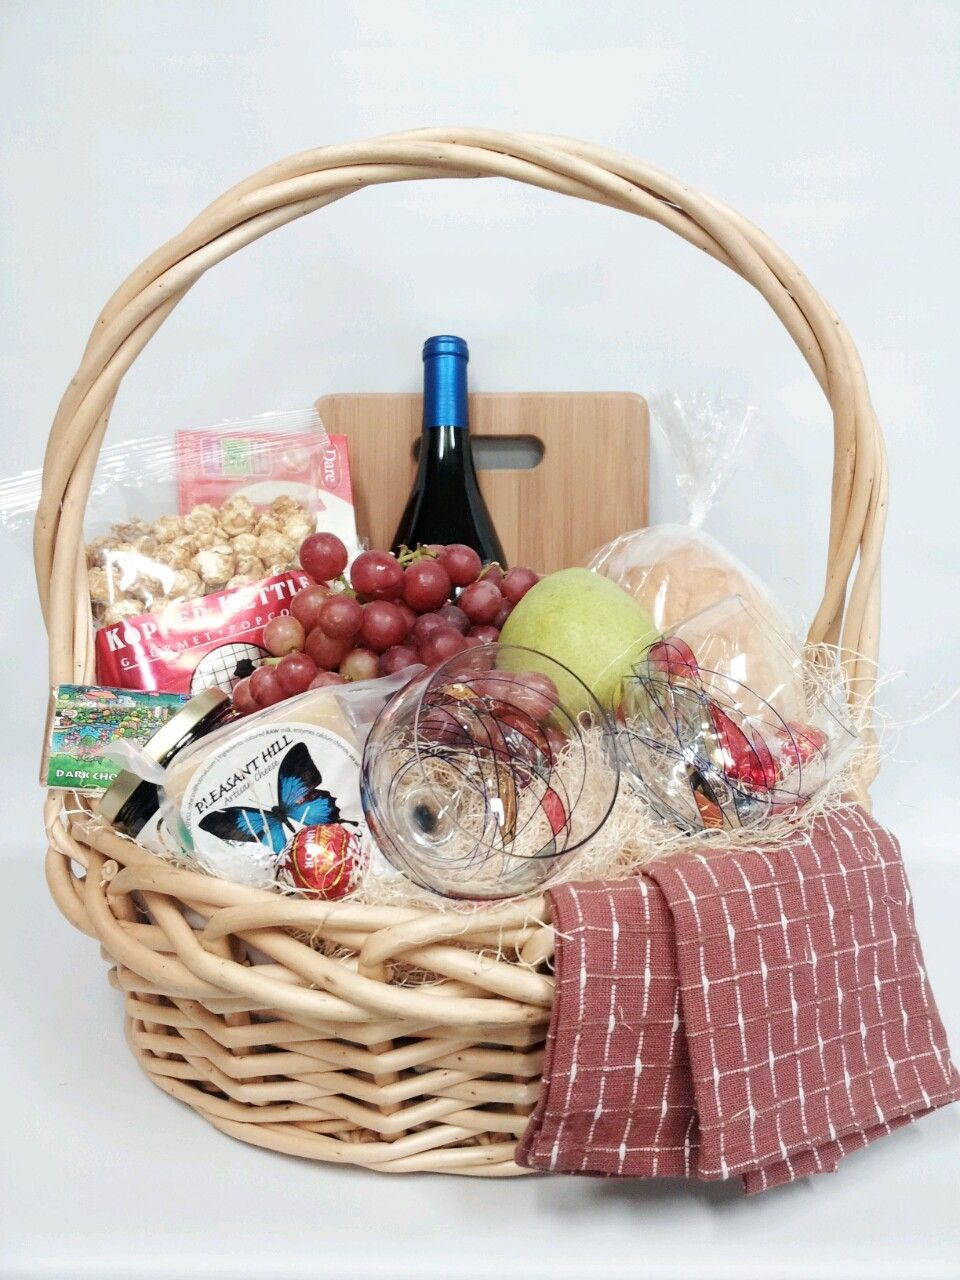 Gourmet gluten food and wine basket as a christmas gift